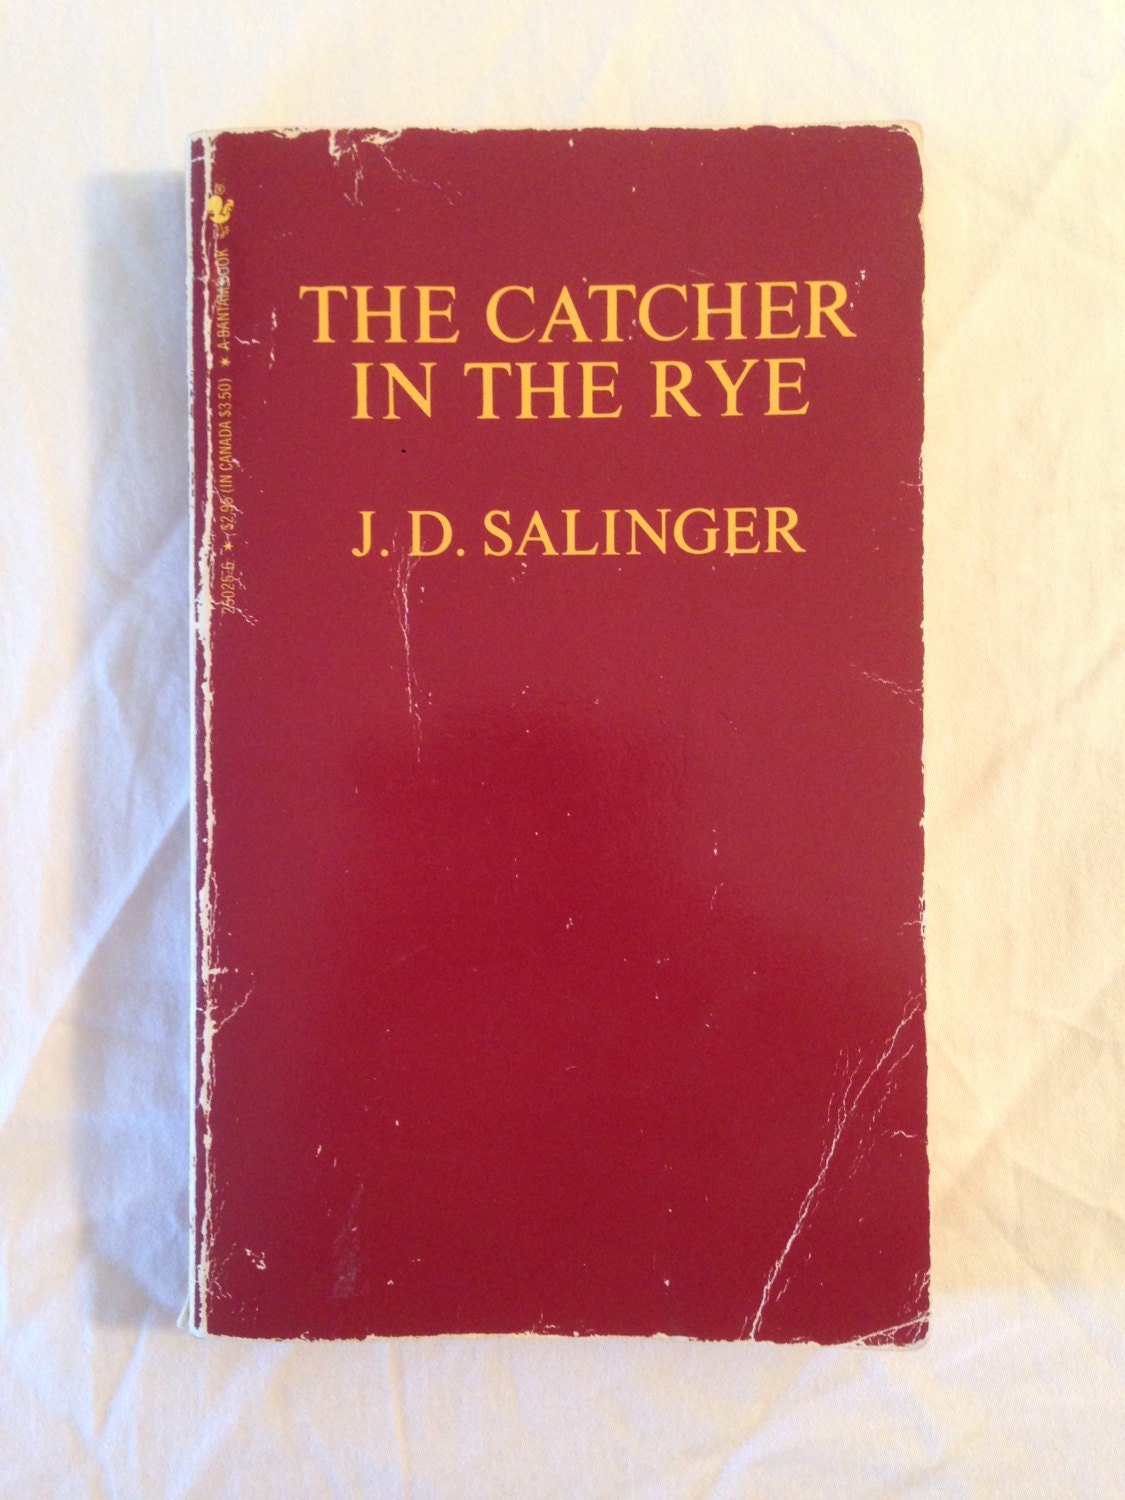 the nature of reality in catcher in the rye by j d salinger J d salinger books and biography bookyards  novel the catcher in the rye, as well as his reclusive nature  of the catcher in the rye grew, salinger gradually.